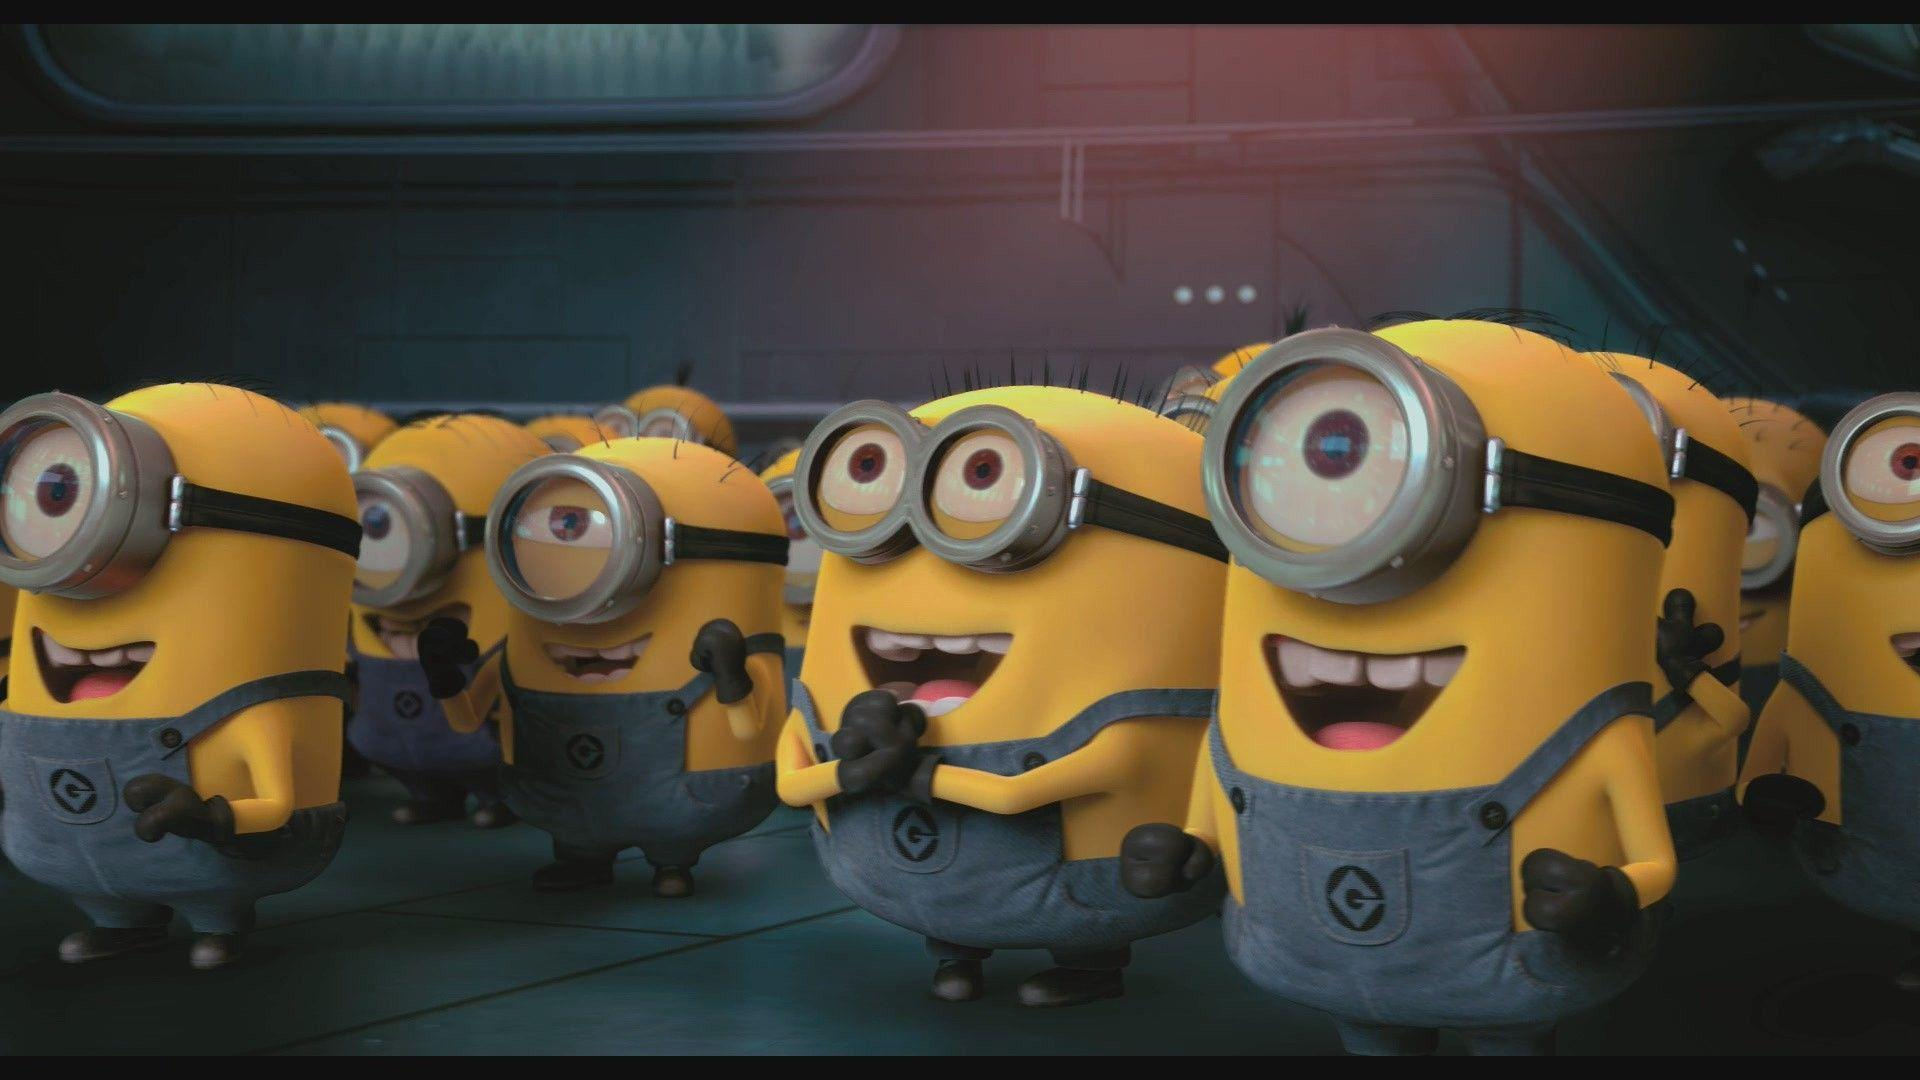 Minion Bedroom Wallpaper Despicable Me Minions Wallpapers Wallpaper Cave